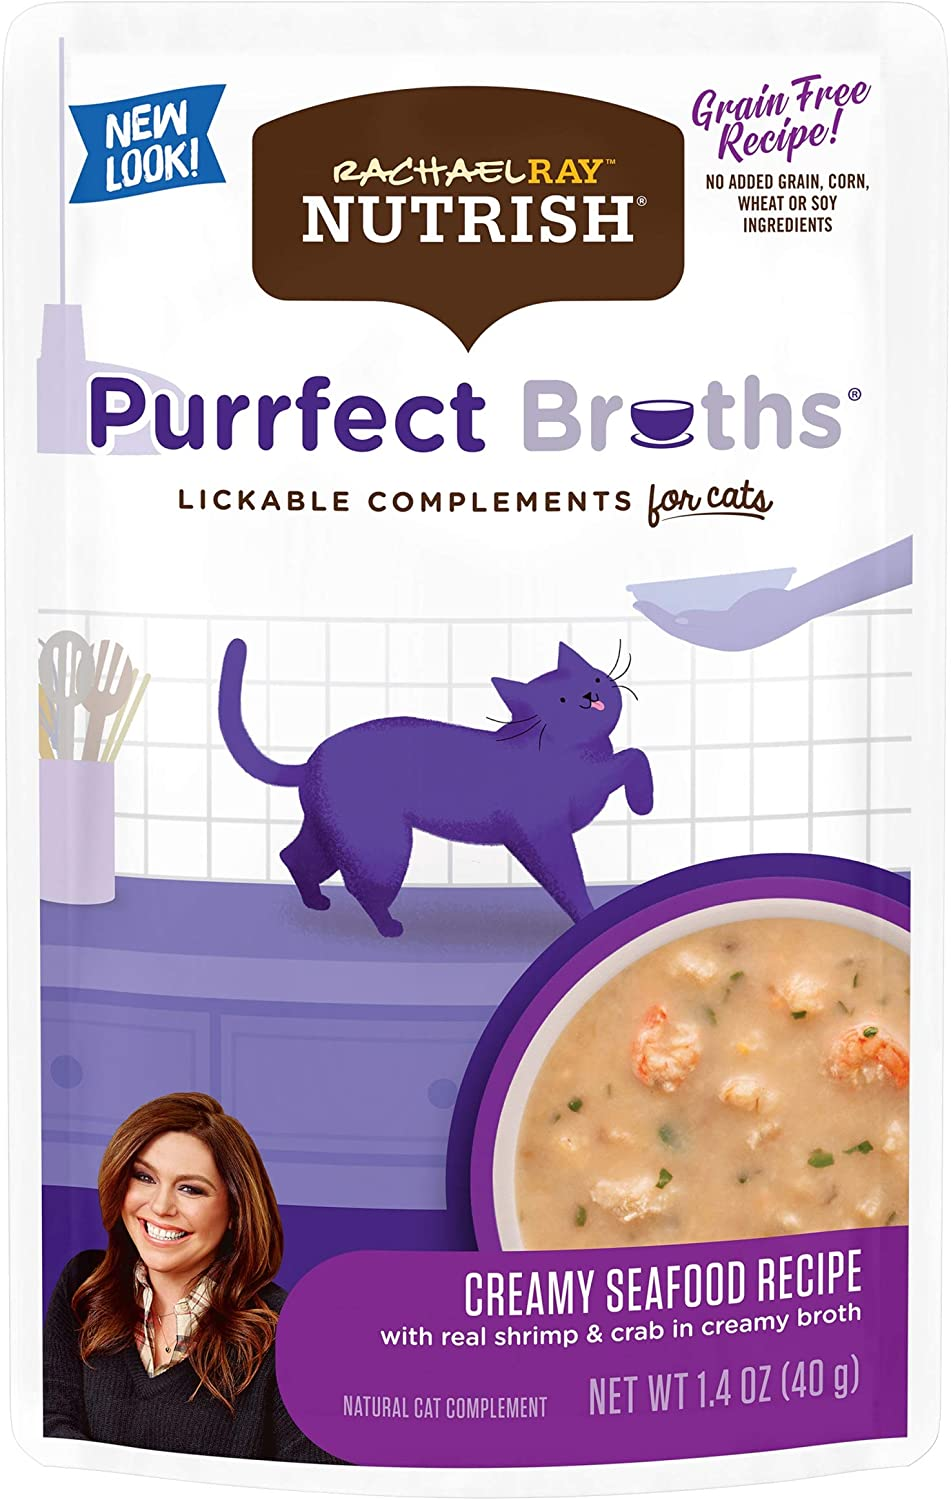 Rachael Ray Nutrish Purrfect Broths Natural Wet Cat Food, Creamy Seafood Bisque with Shrimp & Crab Recipe, 1.4 Ounce Pouch (Pack of 24), Grain Free (Packaging May Vary)